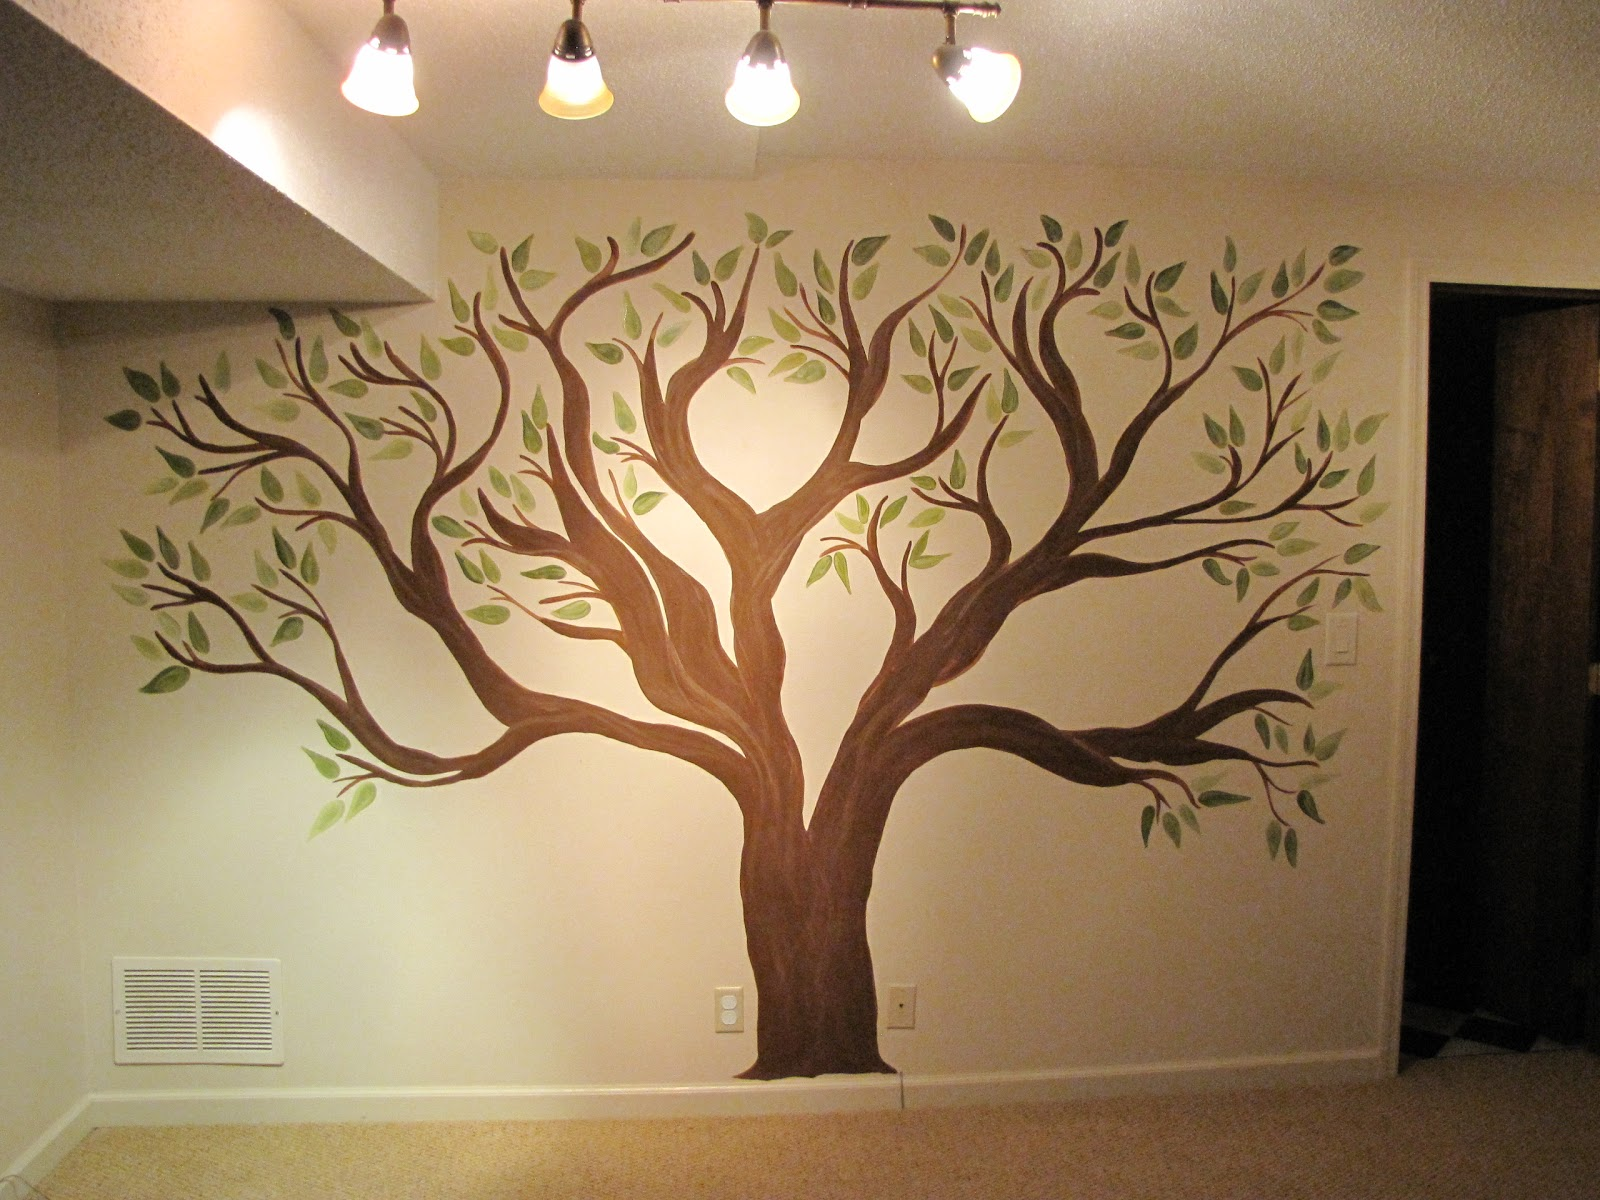 Family Tree Design Ideas free shipping large cute butterflies family tree design ideas Creative Genius Art Family Tree Wall Mural Family Tree Design Ideas